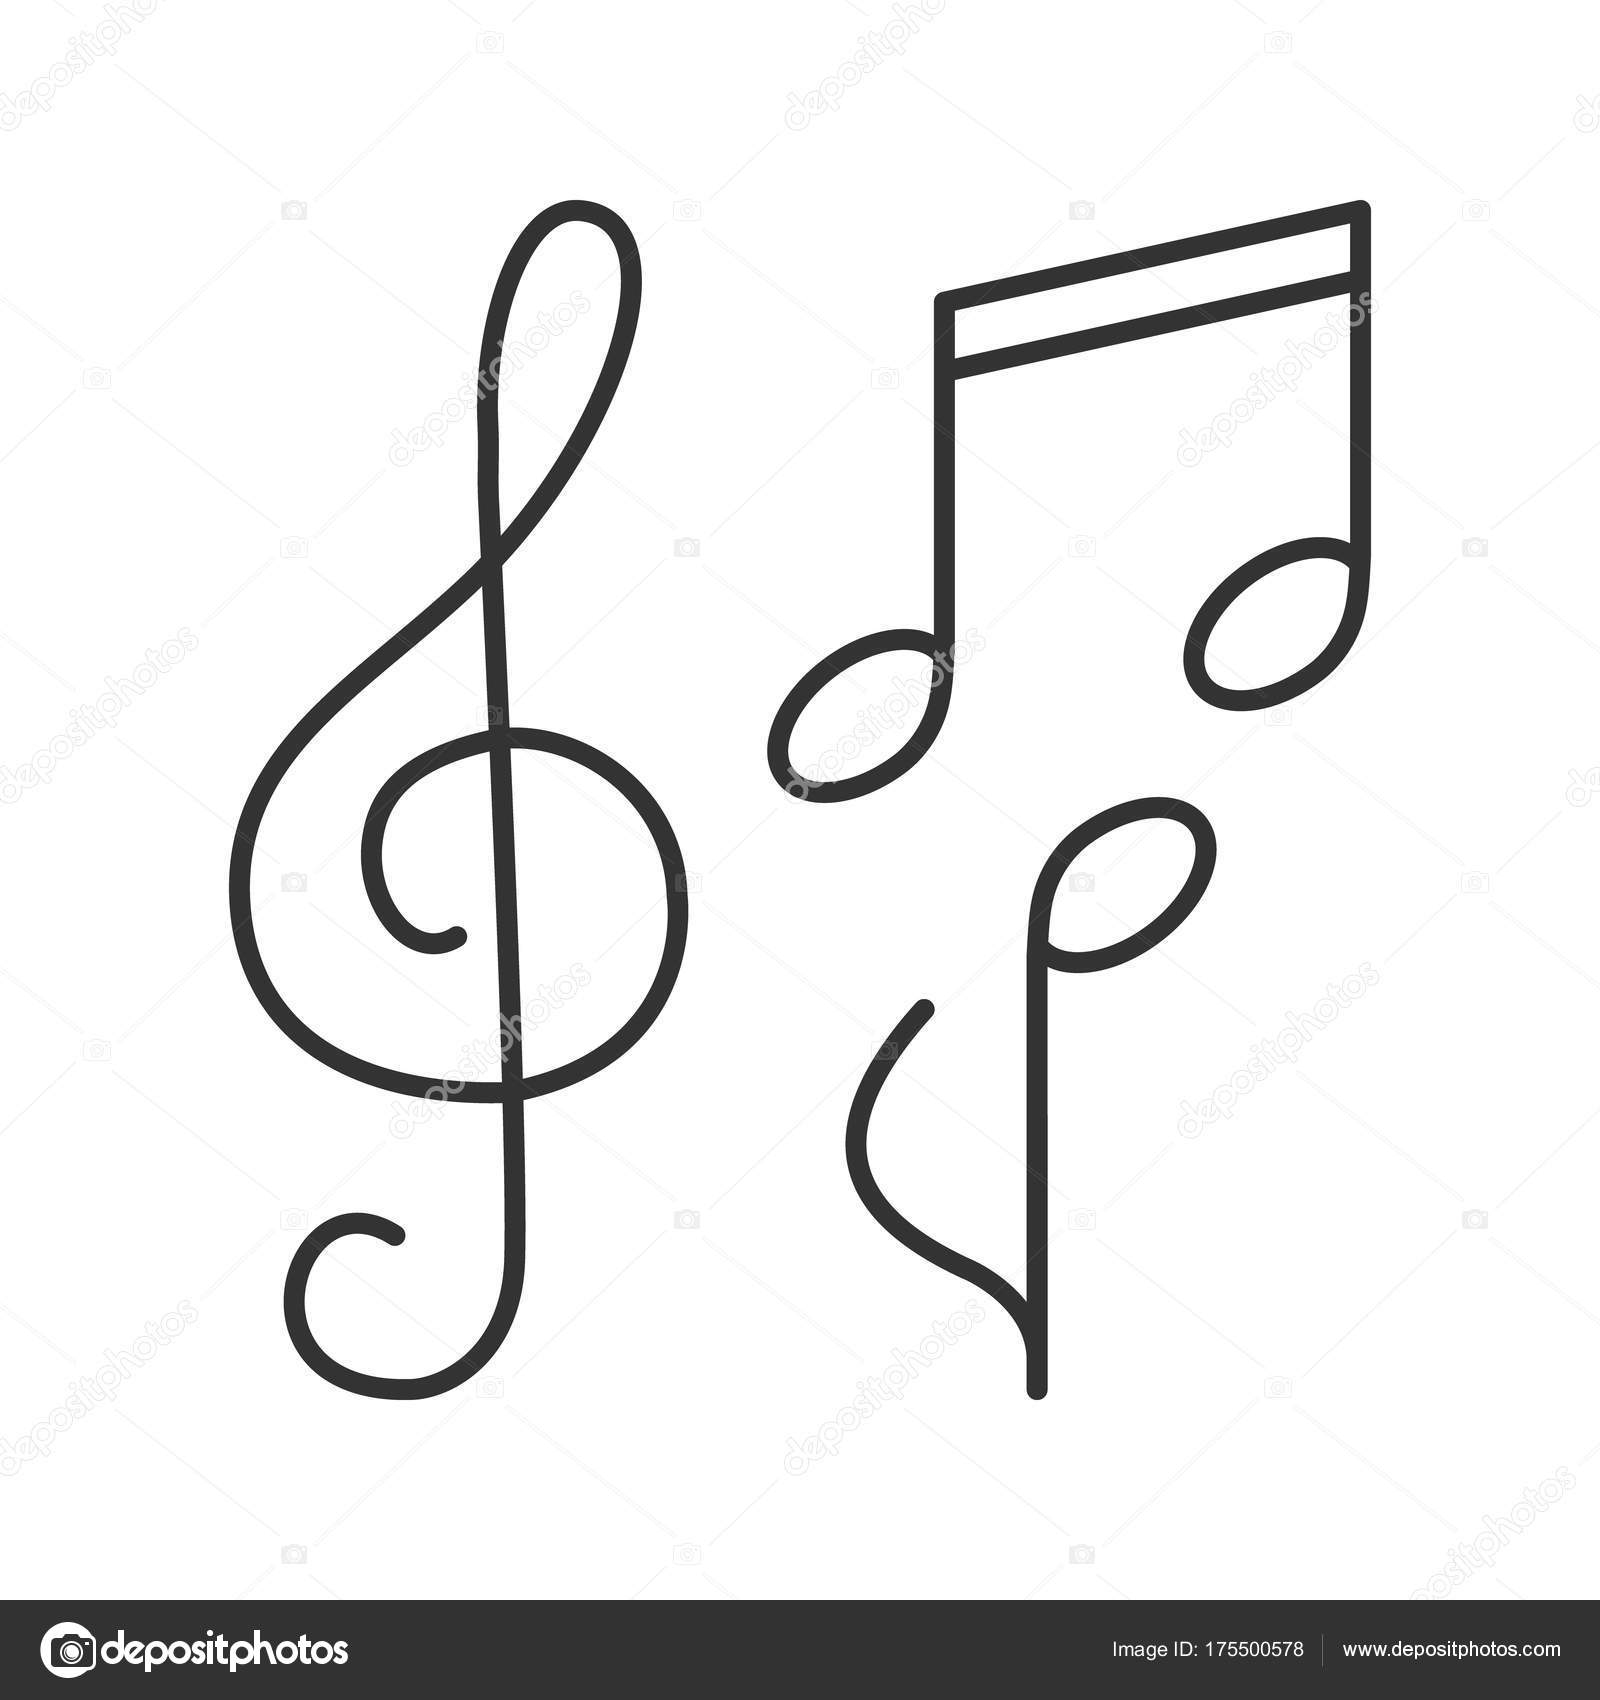 Treble clef clipart thin. Musical notes linear icon